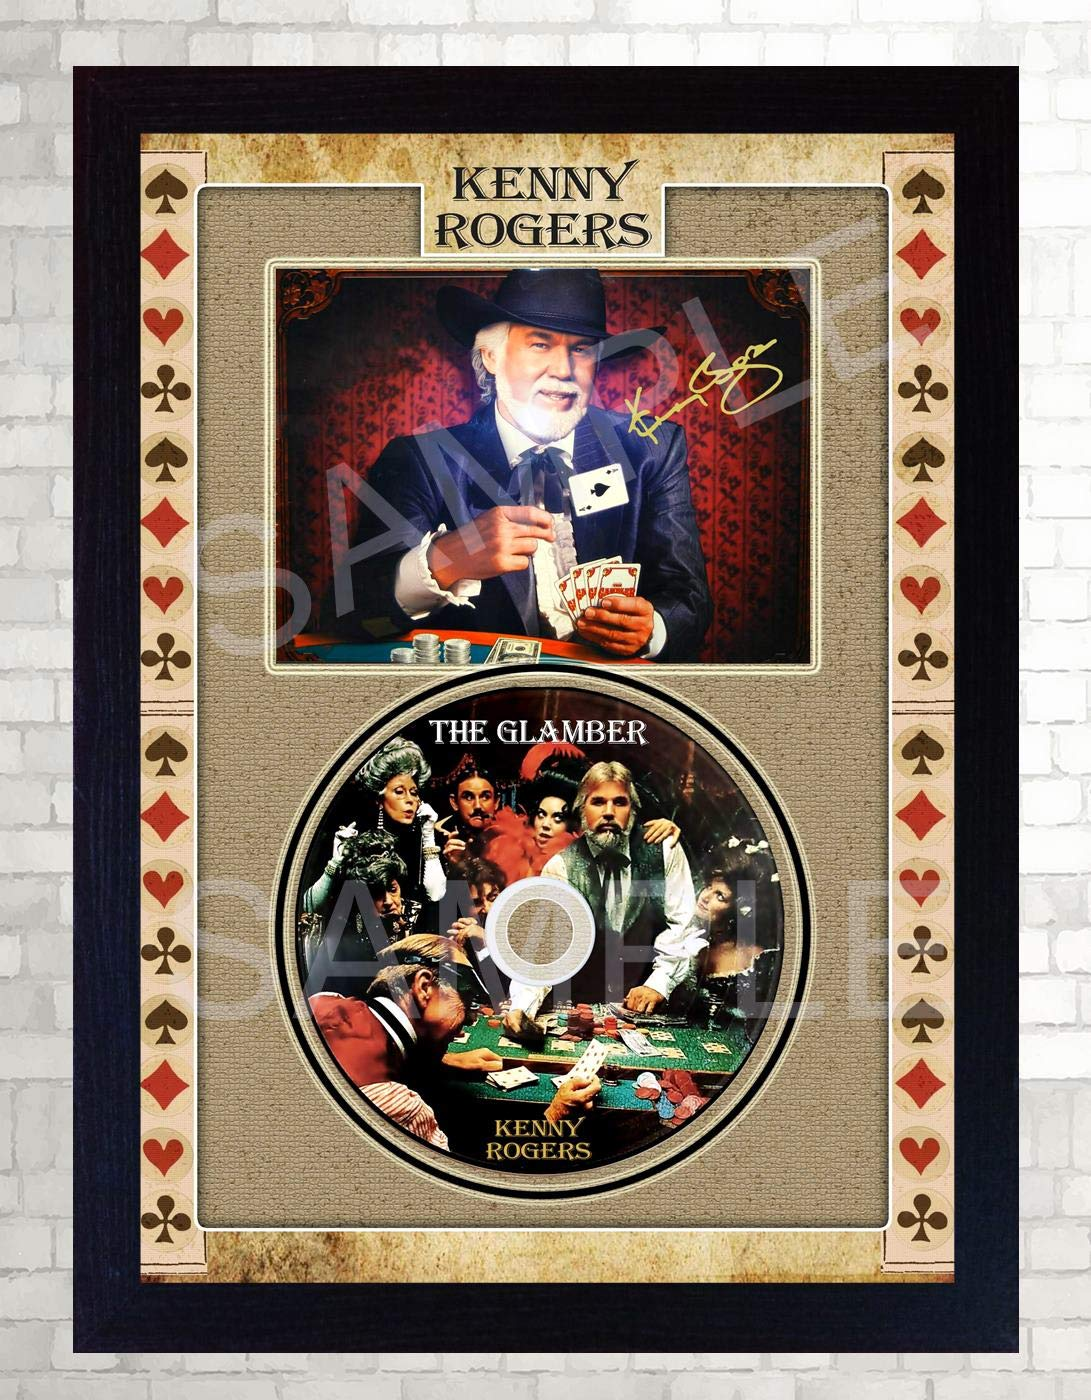 Sgh Services New Kenny Rogers The Gambler Signed Framed Print And Cd Disc Buy Online In Faroe Islands At Faroe Desertcart Com Productid 212685109